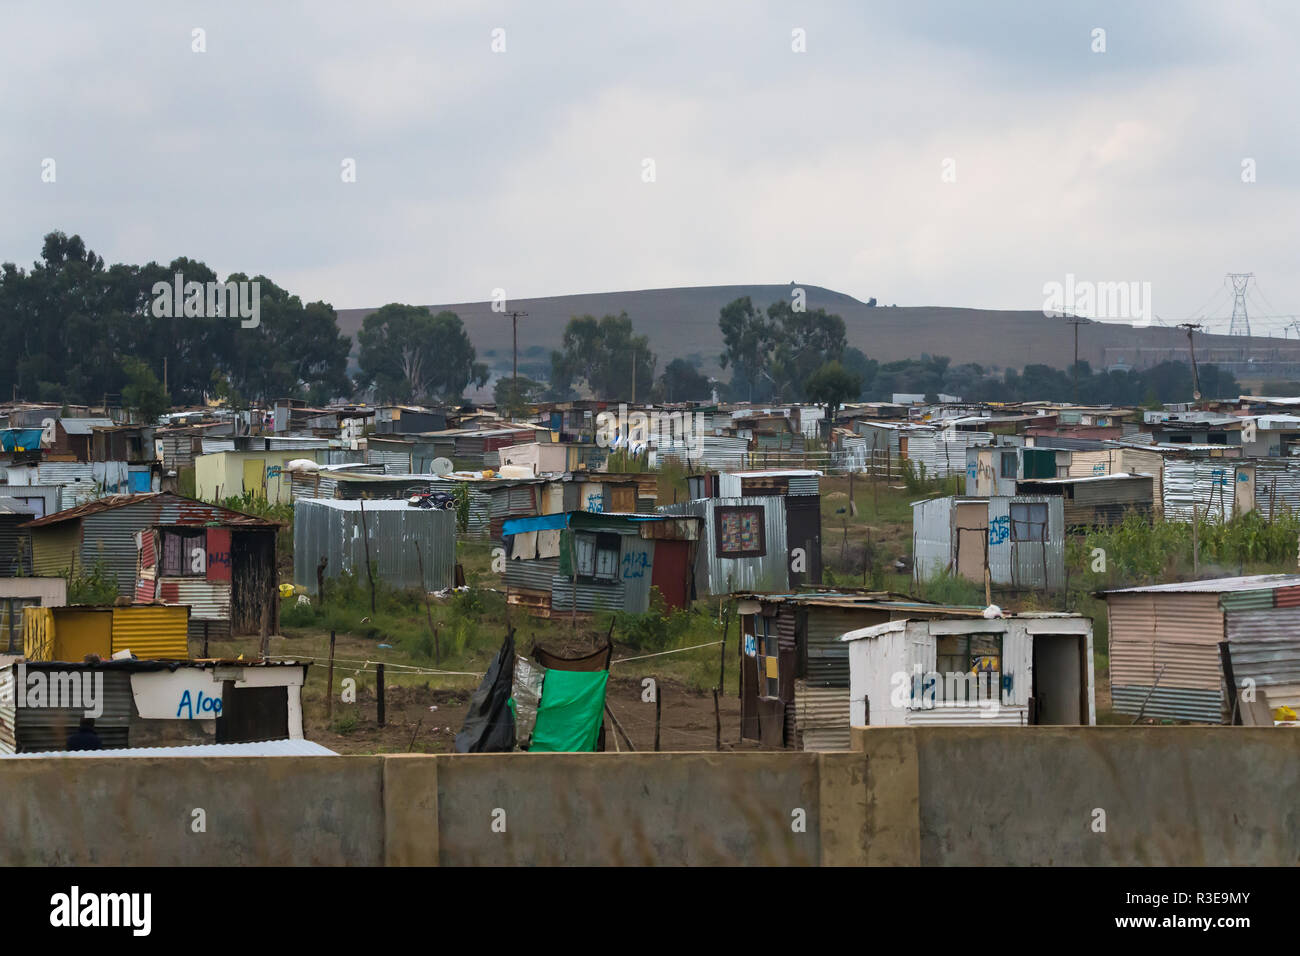 tin shacks or dwellings in a township in  Johannesburg, Gauteng,  South Africa showing poverty in the black African community - Stock Image